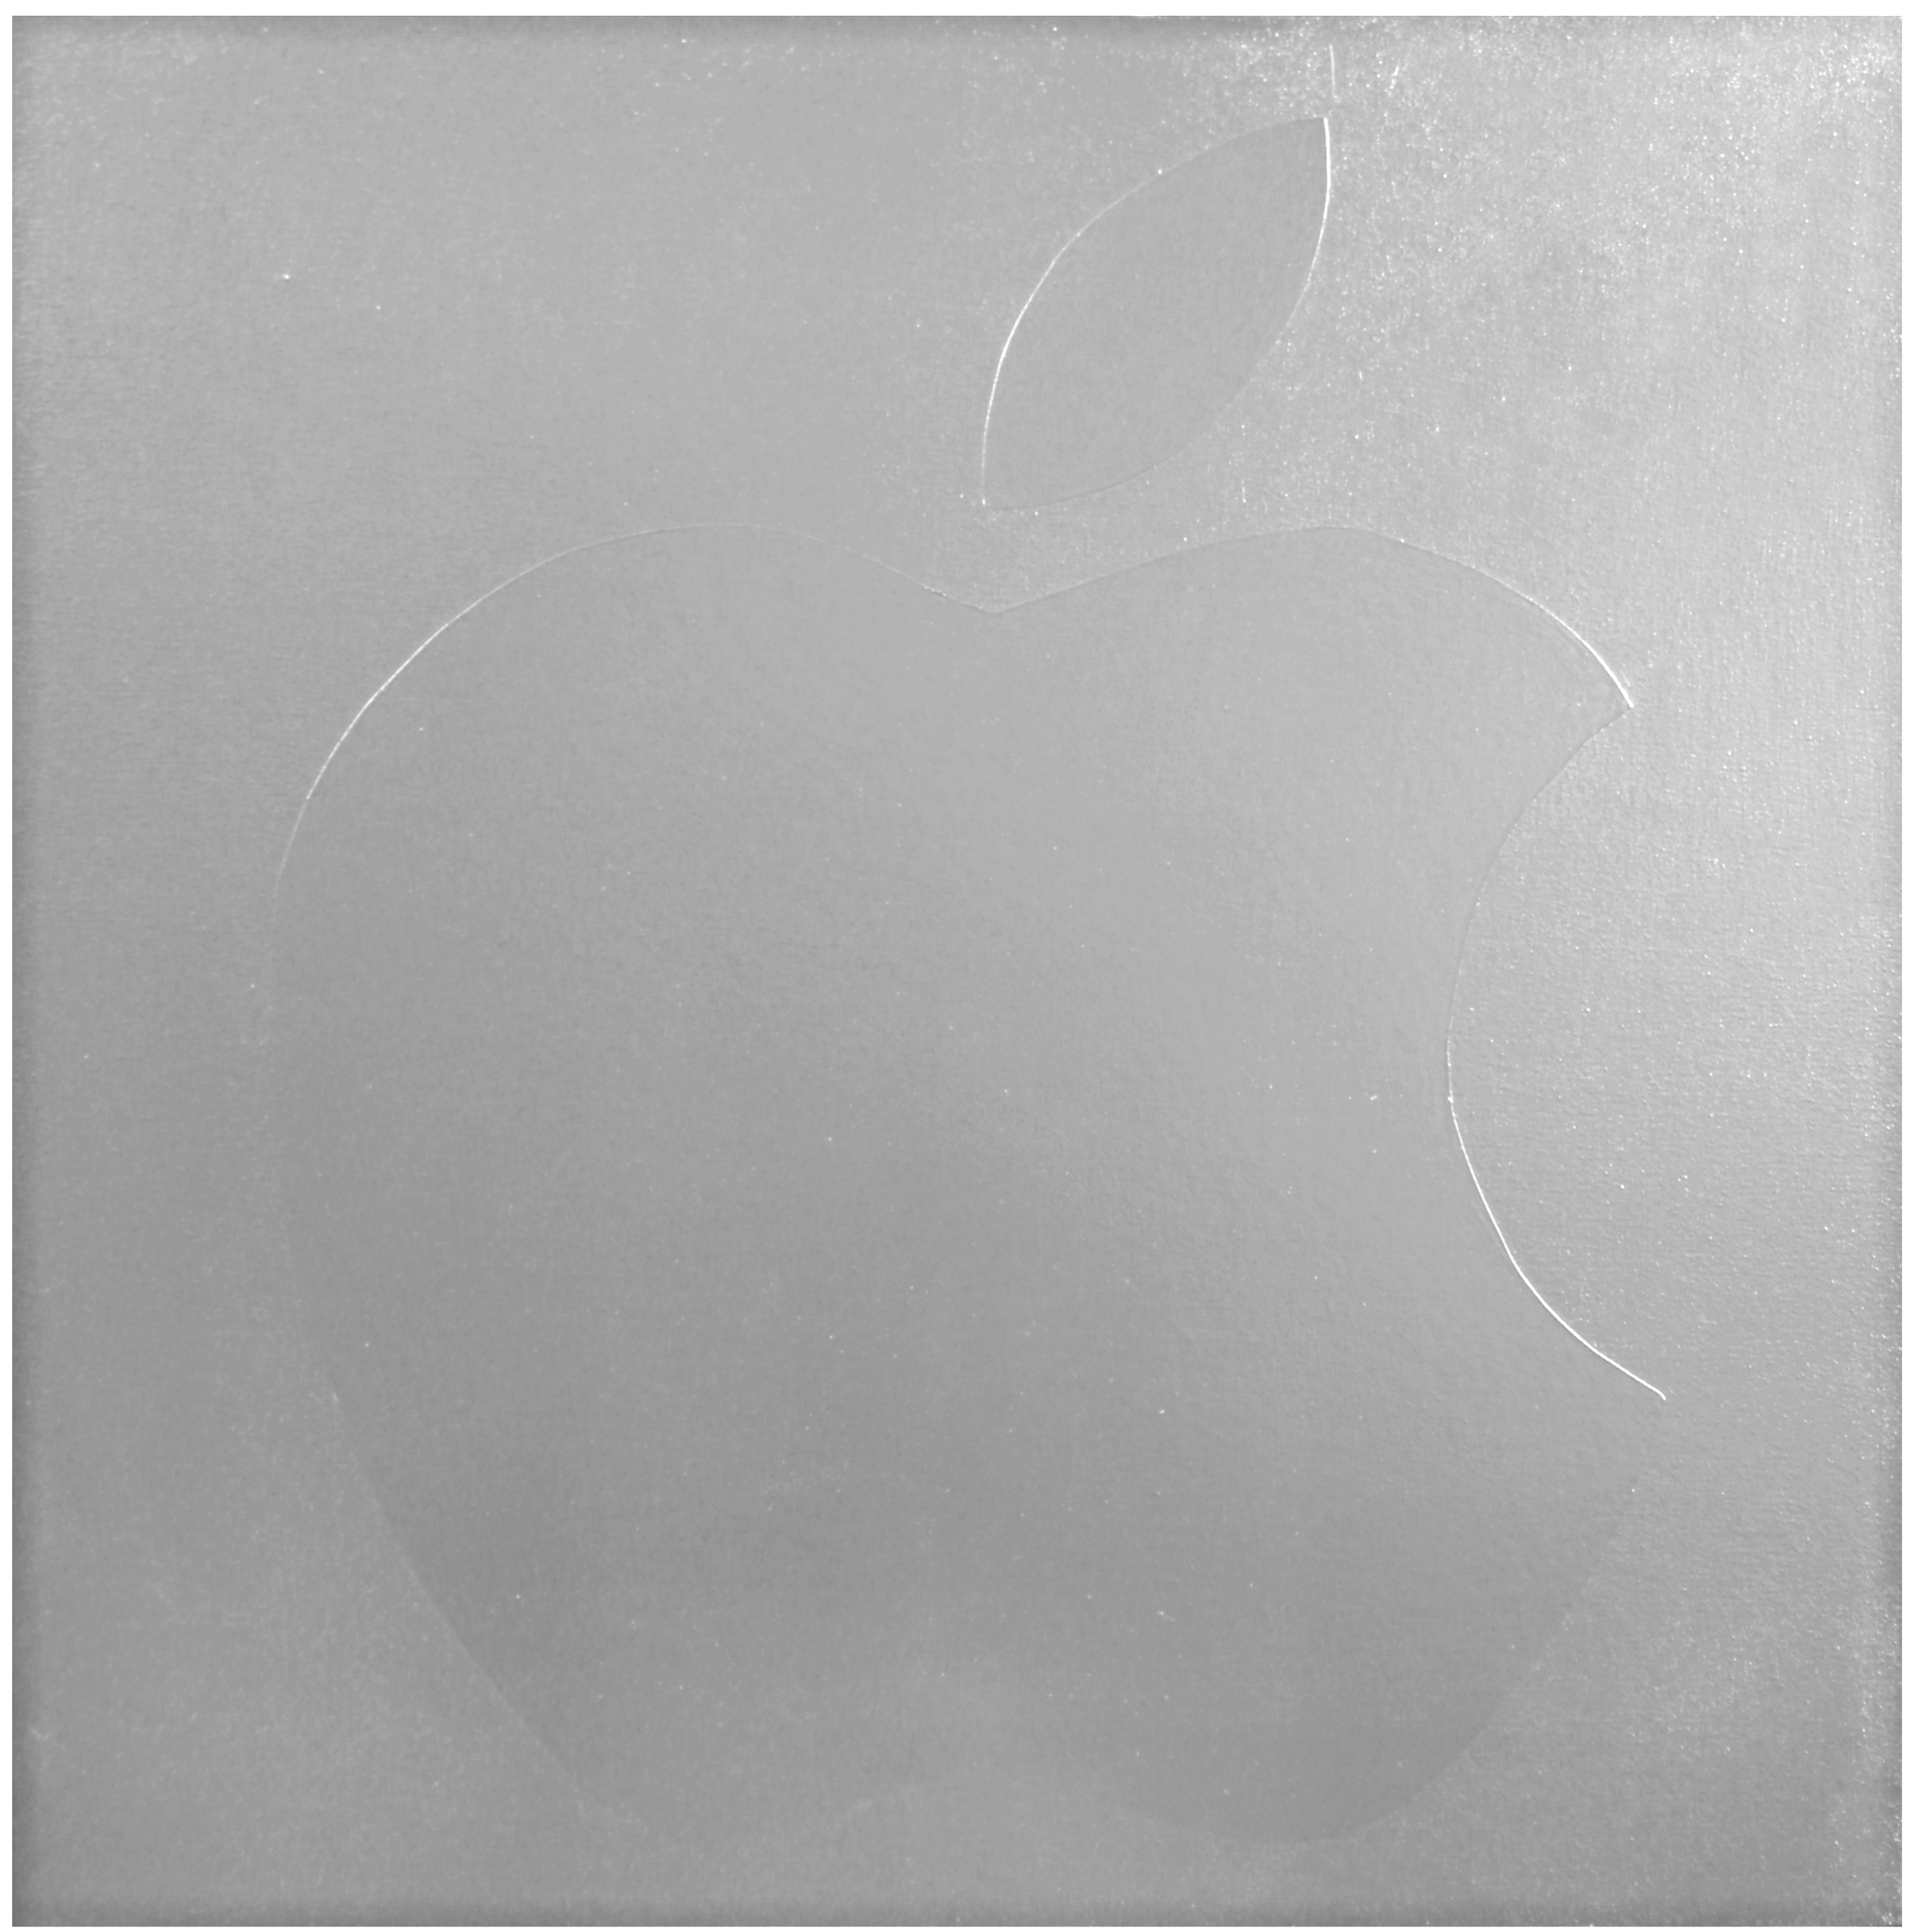 Macintosh  Industrial Paint on Canvas - 30 x 30in - 2011